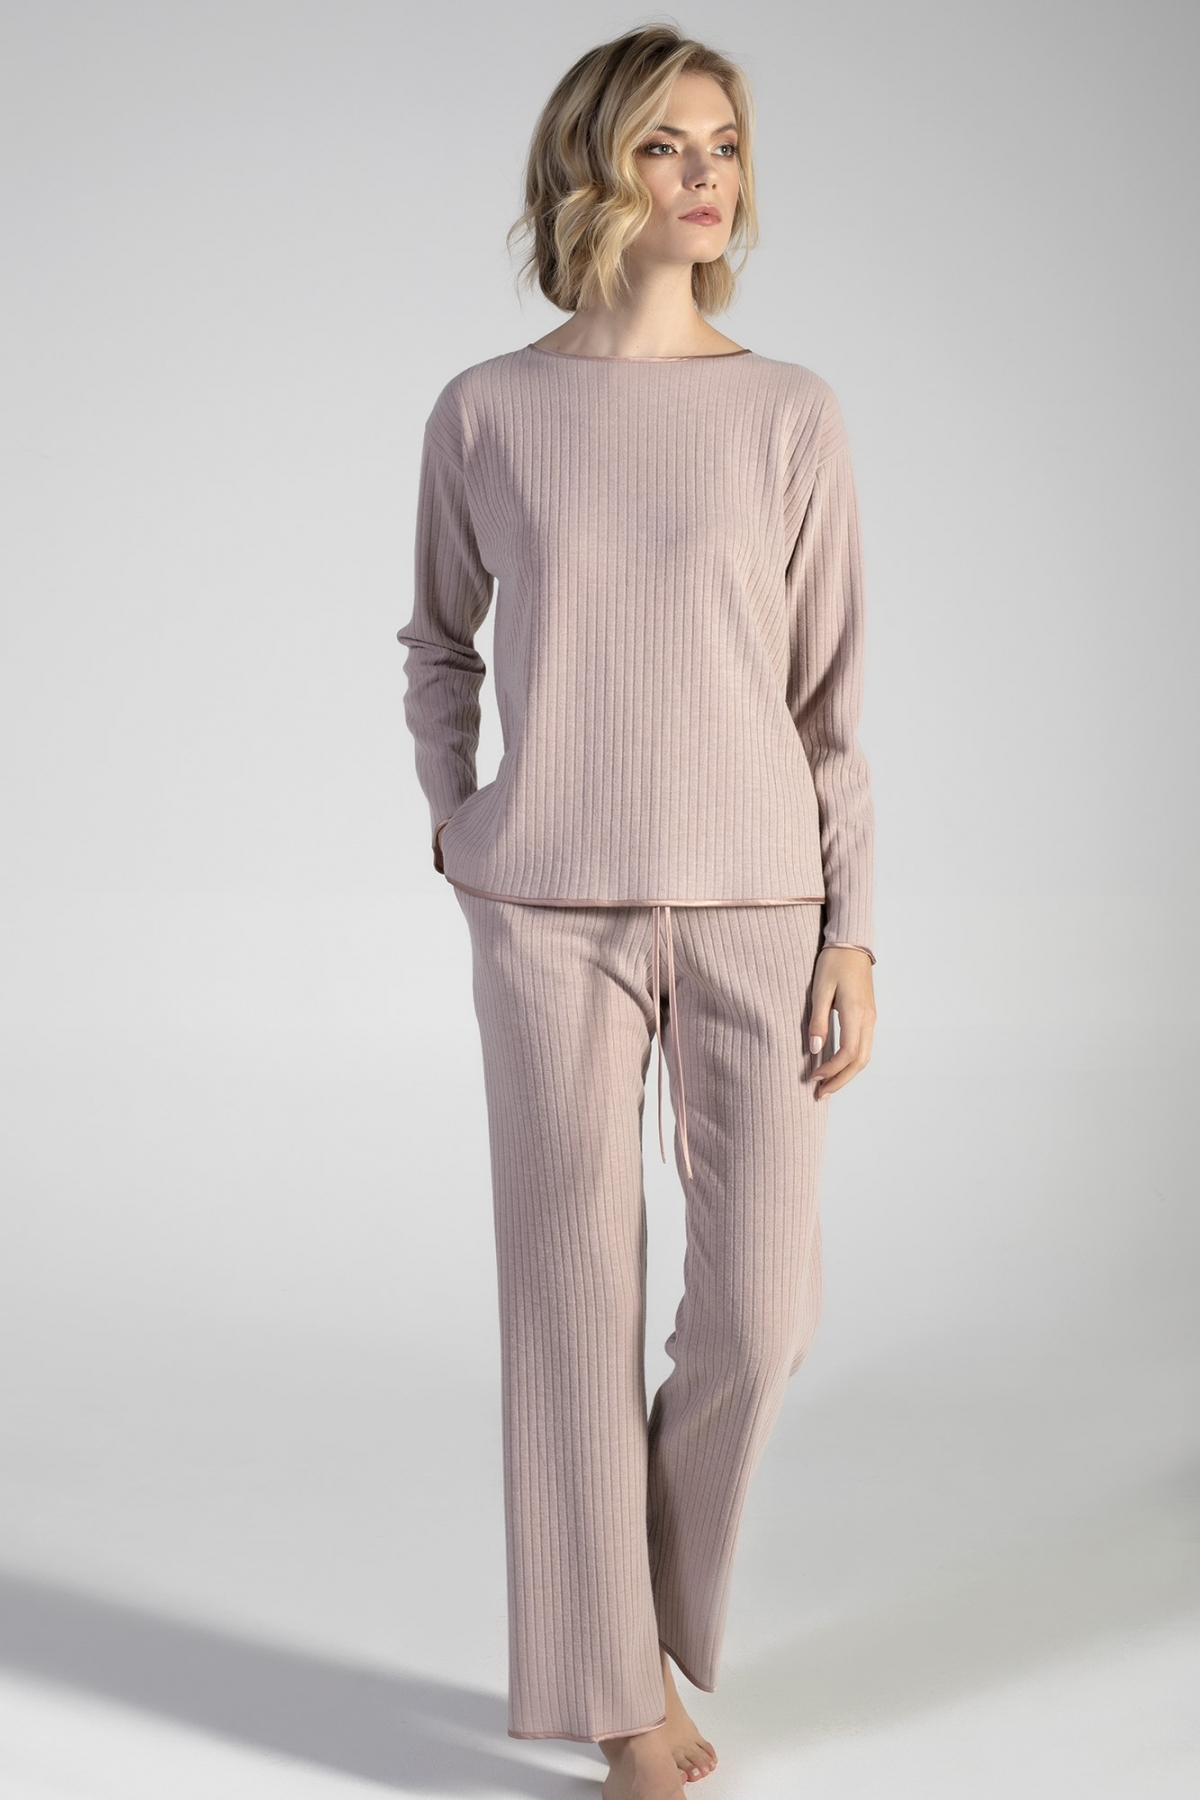 Lounge Set in costina con inserti in raso verdiani loungewear